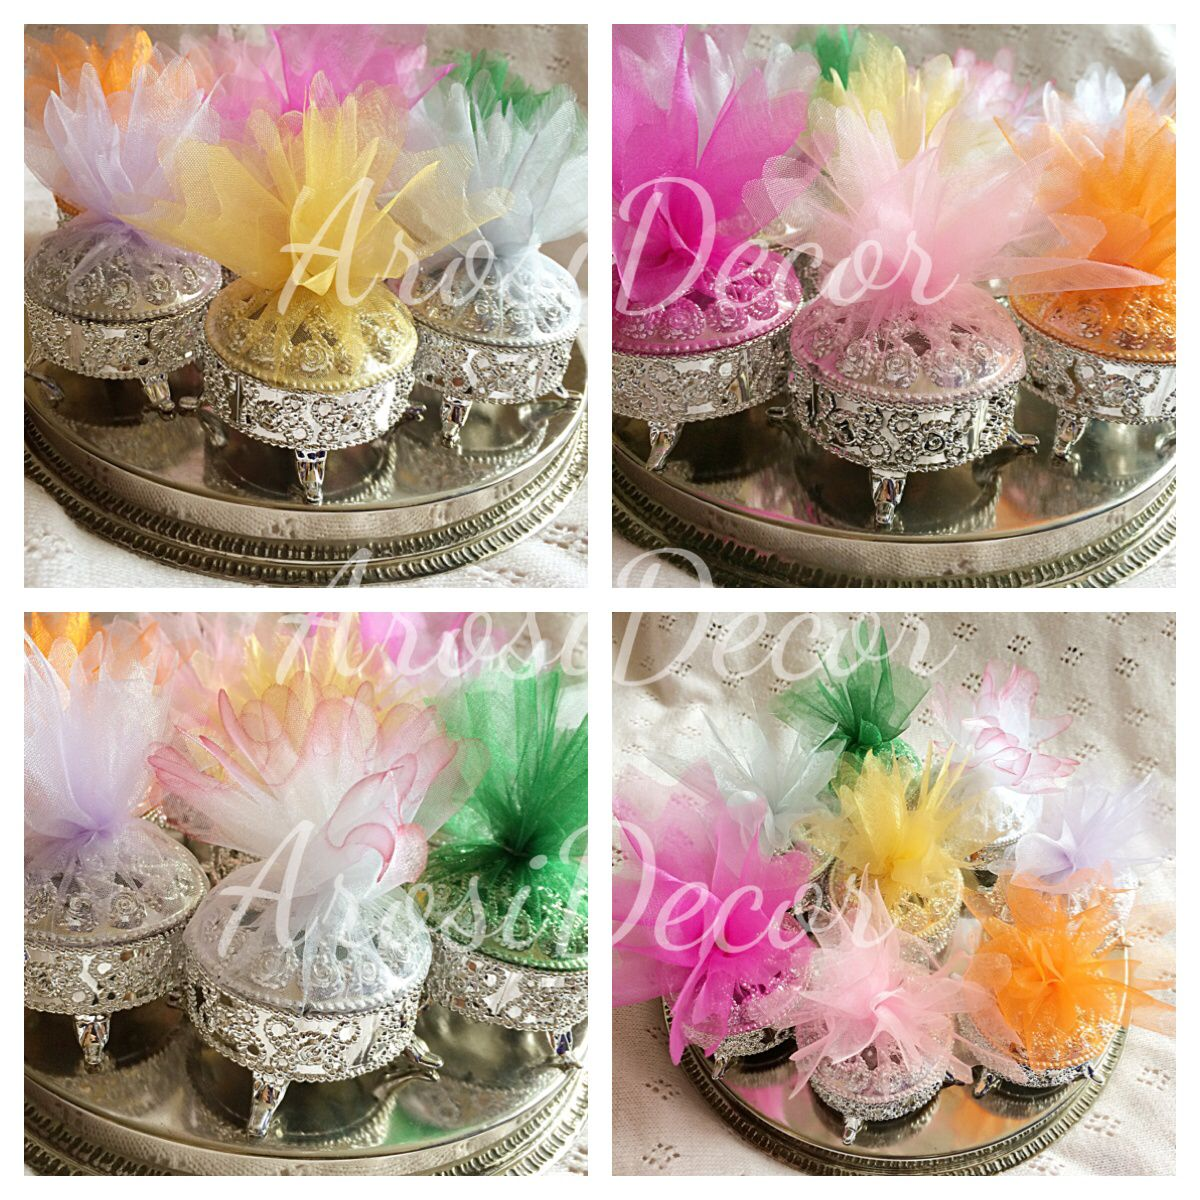 Silver Gifts For Indian Wedding: Silver Favour Boxes By ArosiDecor With Various Shades Of